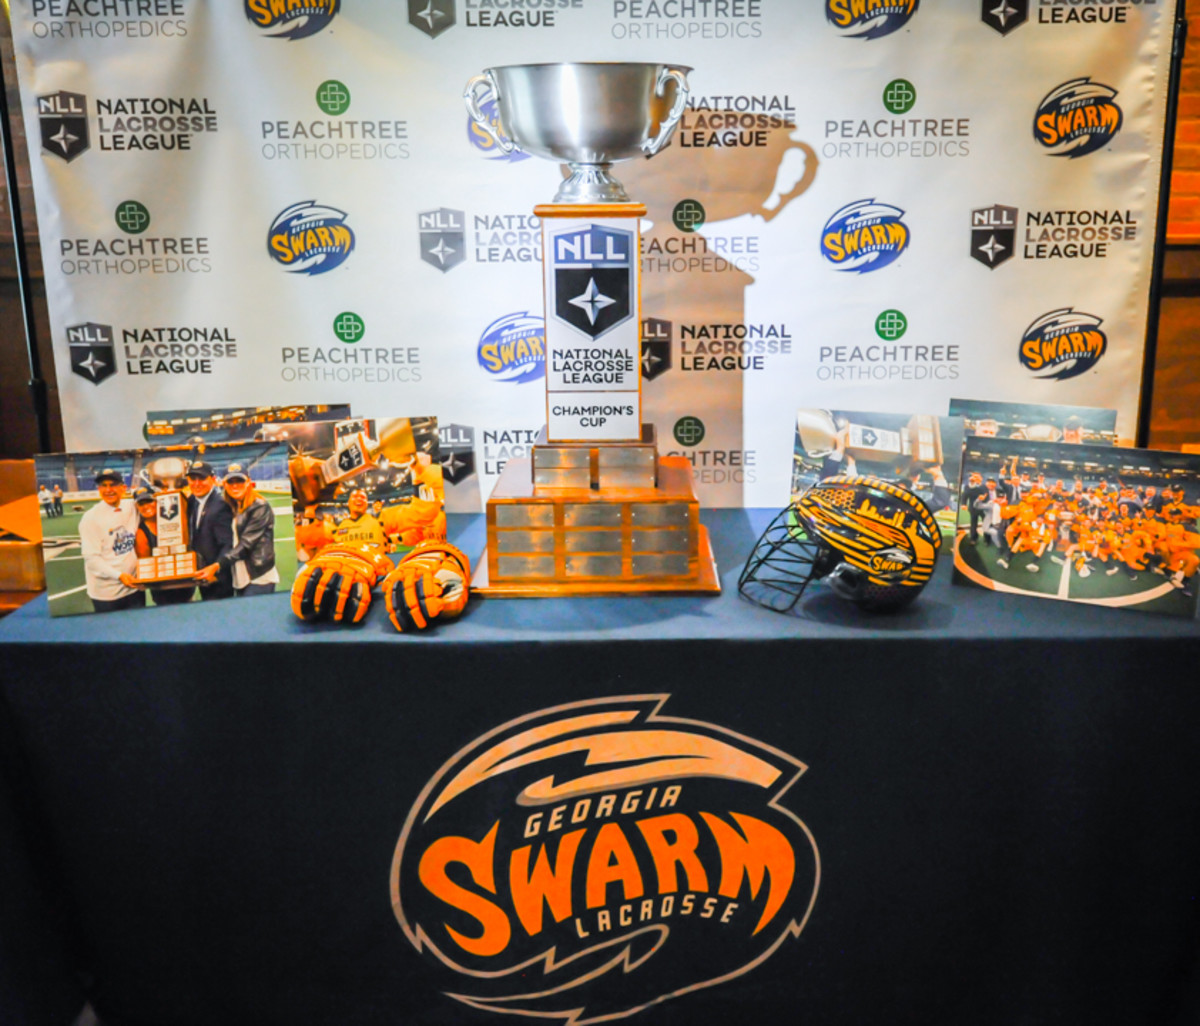 The 2017 NLL Champion's Cup on display at the Georgia Swarm's welcome home celebration on June 15, 2017. - Amy Morris